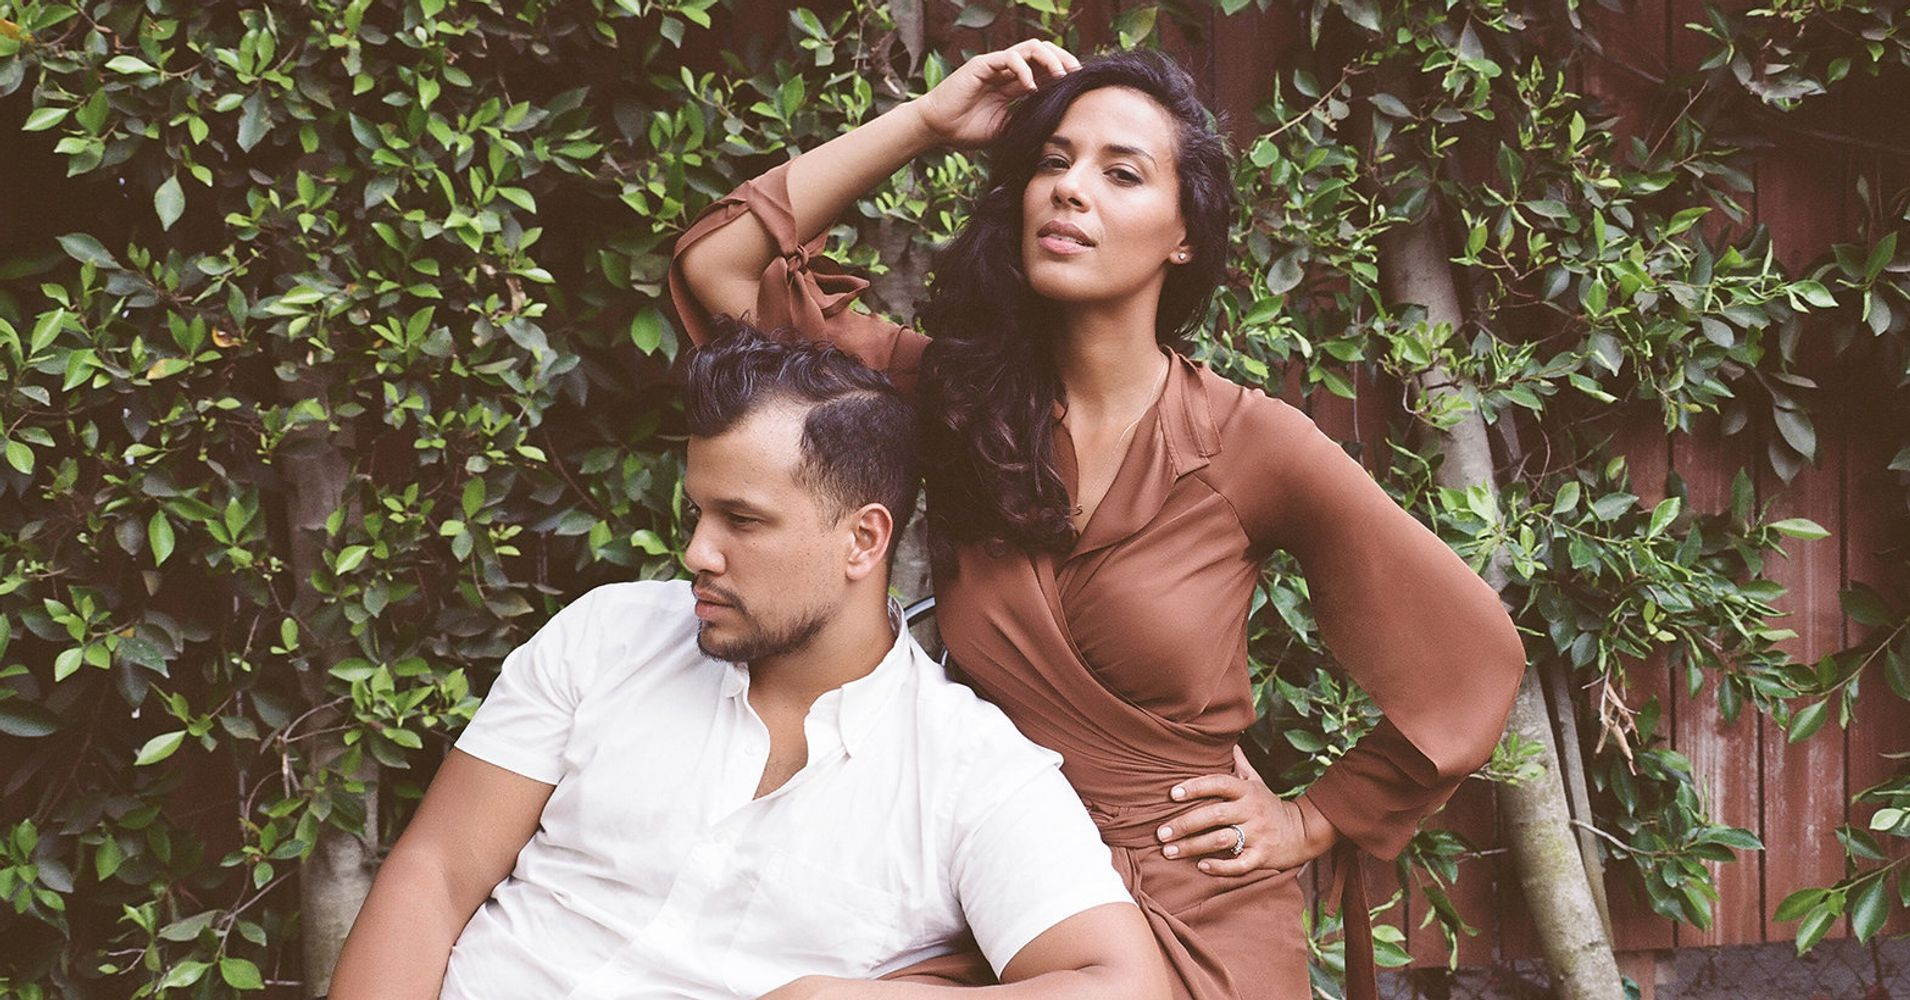 Johnnyswim gets personal about loss in new song let it matter johnnyswim gets personal about loss in new song let it matter huffpost hexwebz Gallery